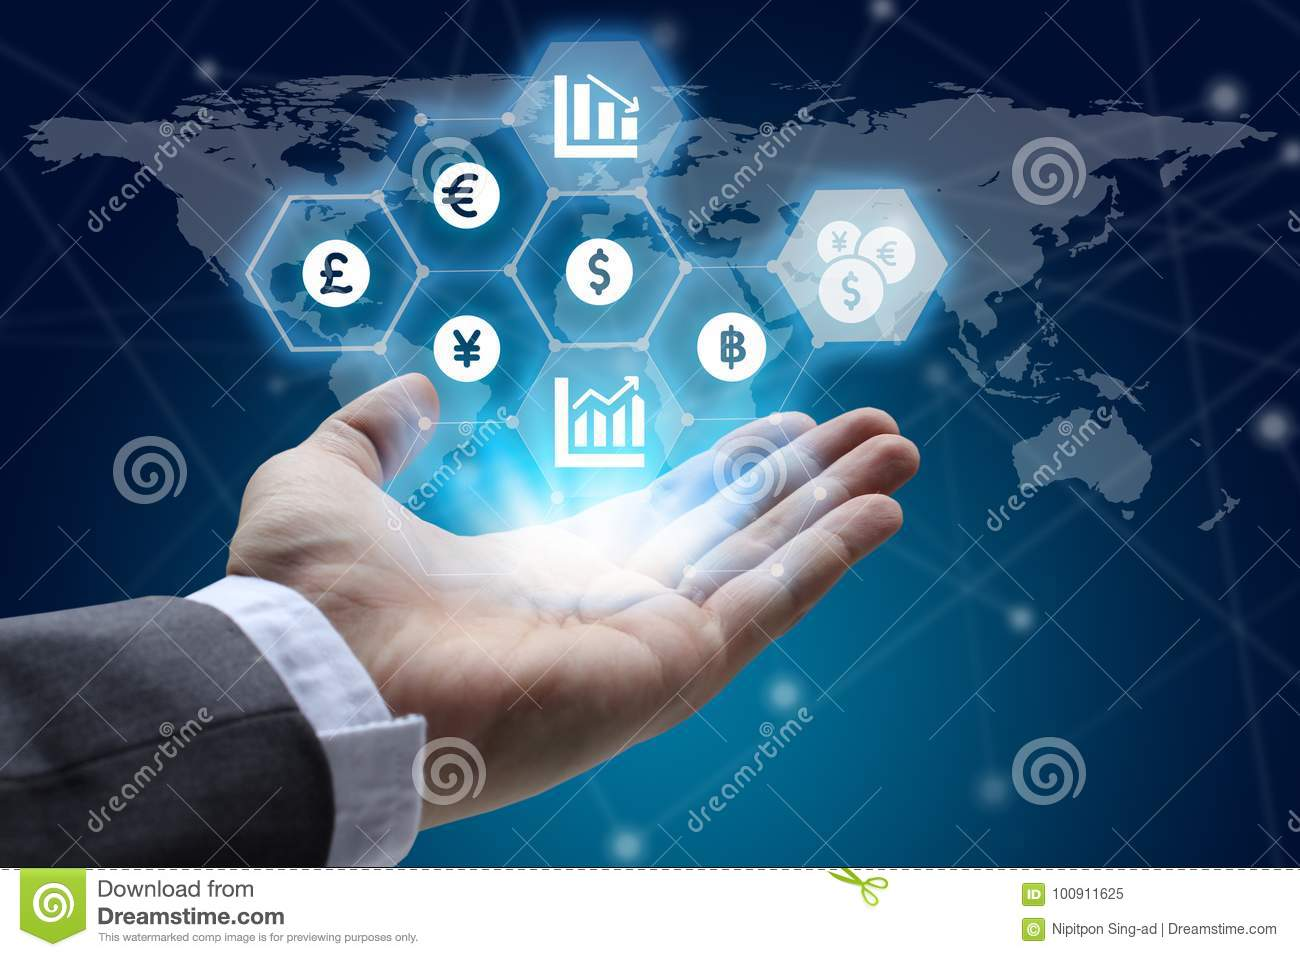 hand holding global network using Currencies sign symbol interface of Fintech over the Network connection of World map background